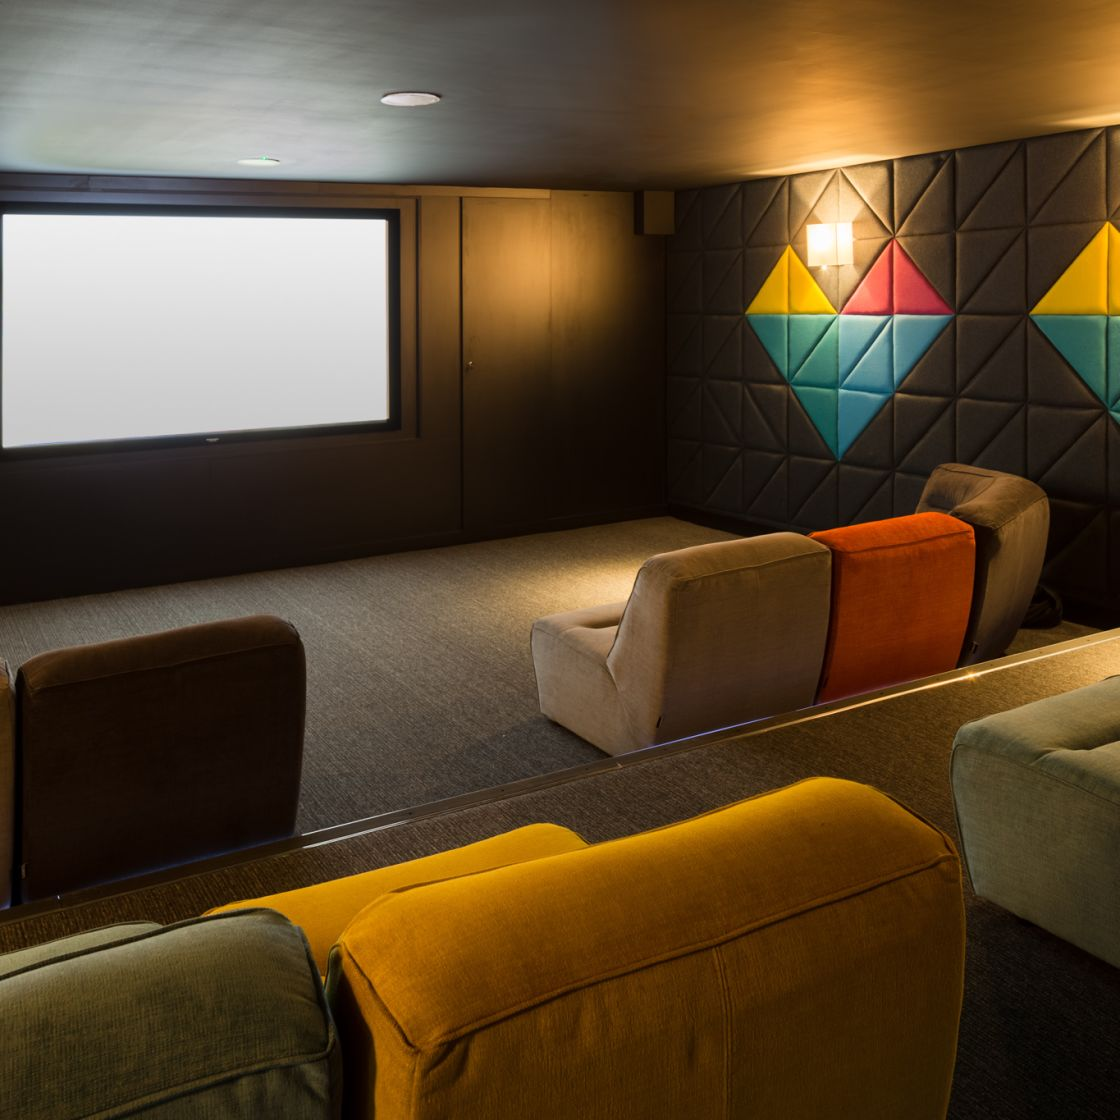 Cinema room with large cinema screen at IconInc, The Glassworks. Student Accommodation in Leeds